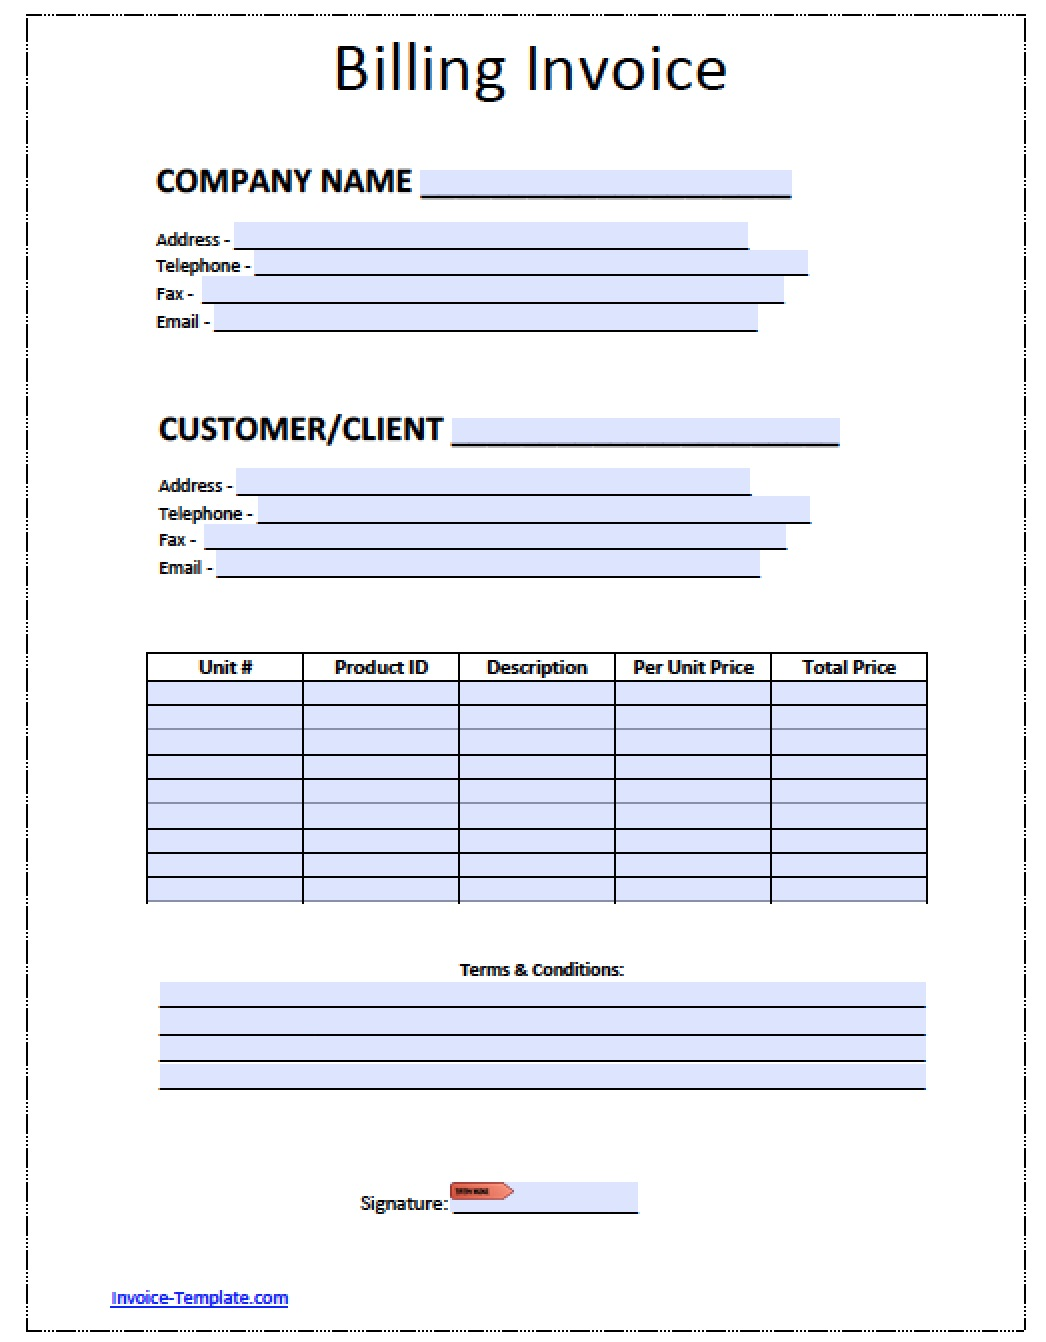 Hius  Inspiring Billing Invoice Invoices Faq U Cloudflare Support Billing  With Engaging Free Billing Invoice Template  Excel  Pdf  Word Doc  Billing With Lovely A Receipt Of Payment Also Blank Receipt Form Printable In Addition Non Negotiable Warehouse Receipt And Rebate Receipt As Well As Concurrent Receipt Legislation Additionally Make A Receipt Free From Happytomco With Hius  Engaging Billing Invoice Invoices Faq U Cloudflare Support Billing  With Lovely Free Billing Invoice Template  Excel  Pdf  Word Doc  Billing And Inspiring A Receipt Of Payment Also Blank Receipt Form Printable In Addition Non Negotiable Warehouse Receipt From Happytomco